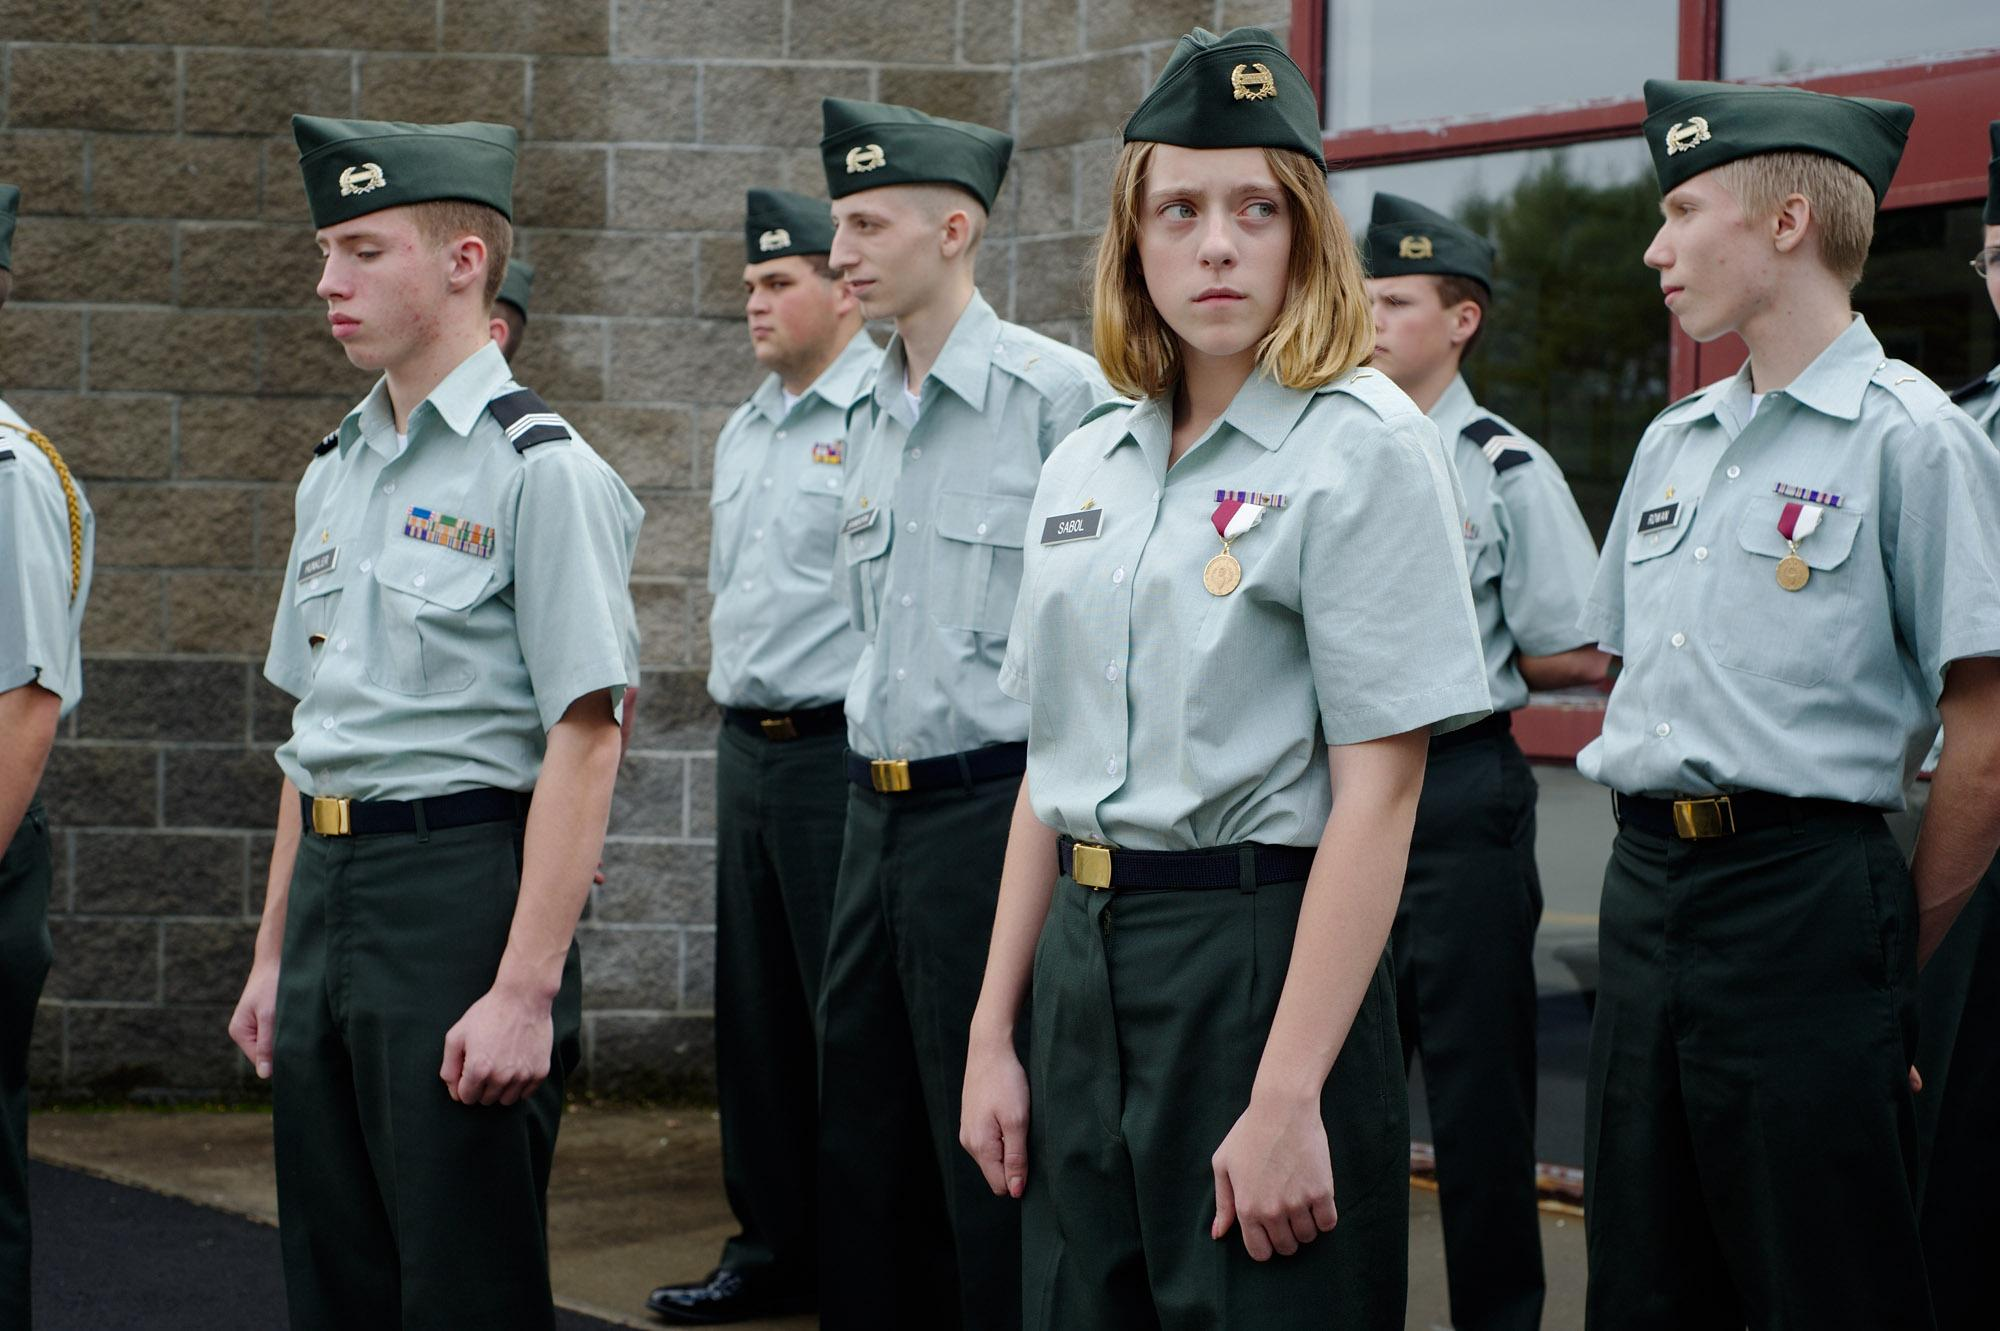 Cadets of the Junior Reserve Officers' Training Corps, JROTC, Wildcat Battalion of Fall Mountain Regional High School stand at attention during the inspection of their Class B uniform, which is used for less formal events or when it's warm. Many students are from families with a military tradition, like Riley (right). Her parents are retired Marines, her father transferred to the Army, her grandfather fought in the Korean War. Langdon, New Hampshire, USA. October 2010.